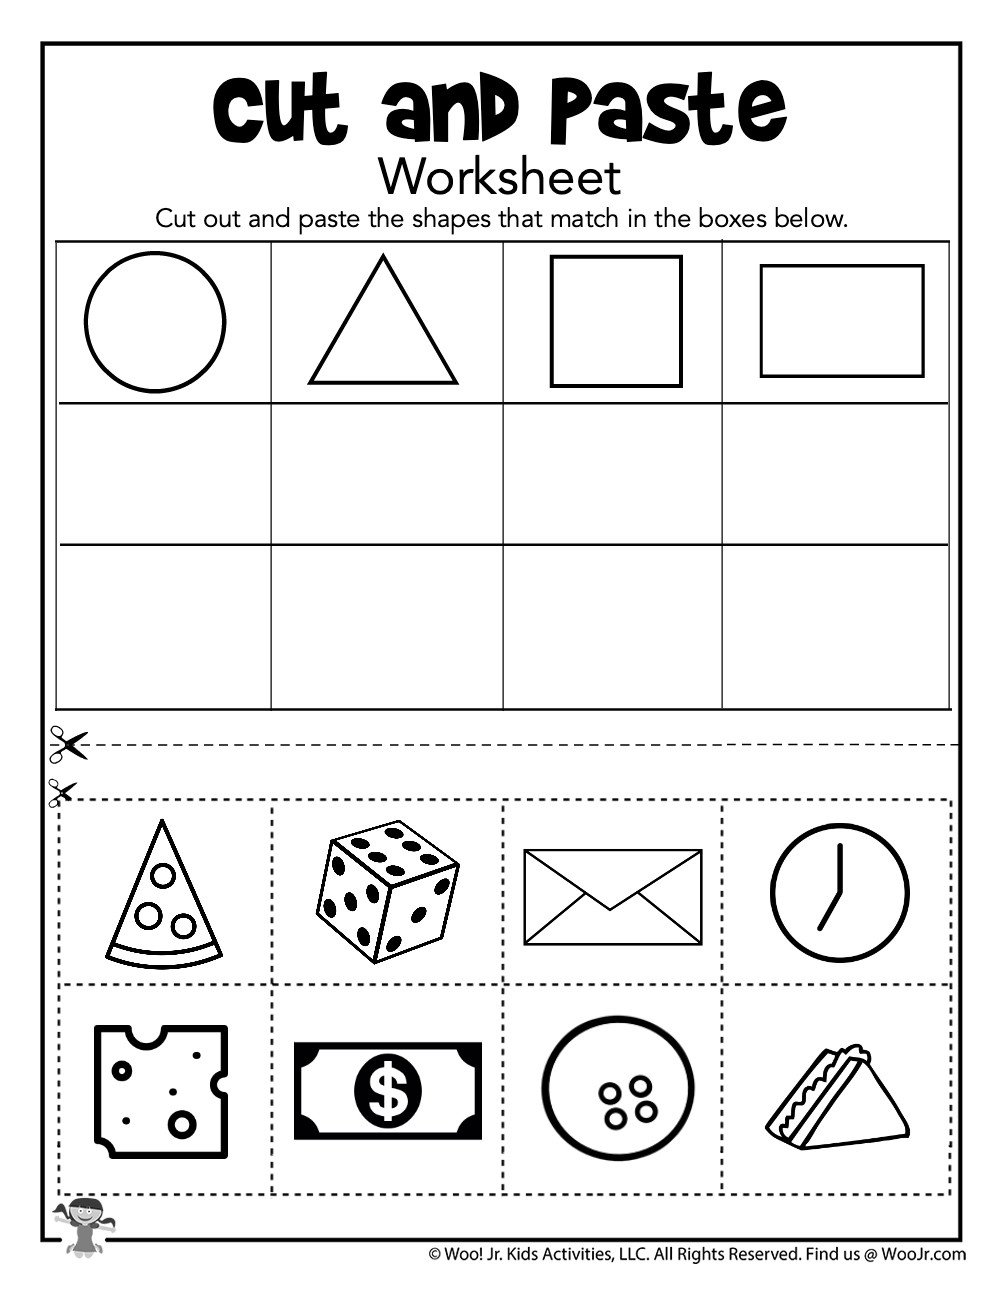 Sorting Shapes Worksheets Cut and Paste Shape sorting Worksheet